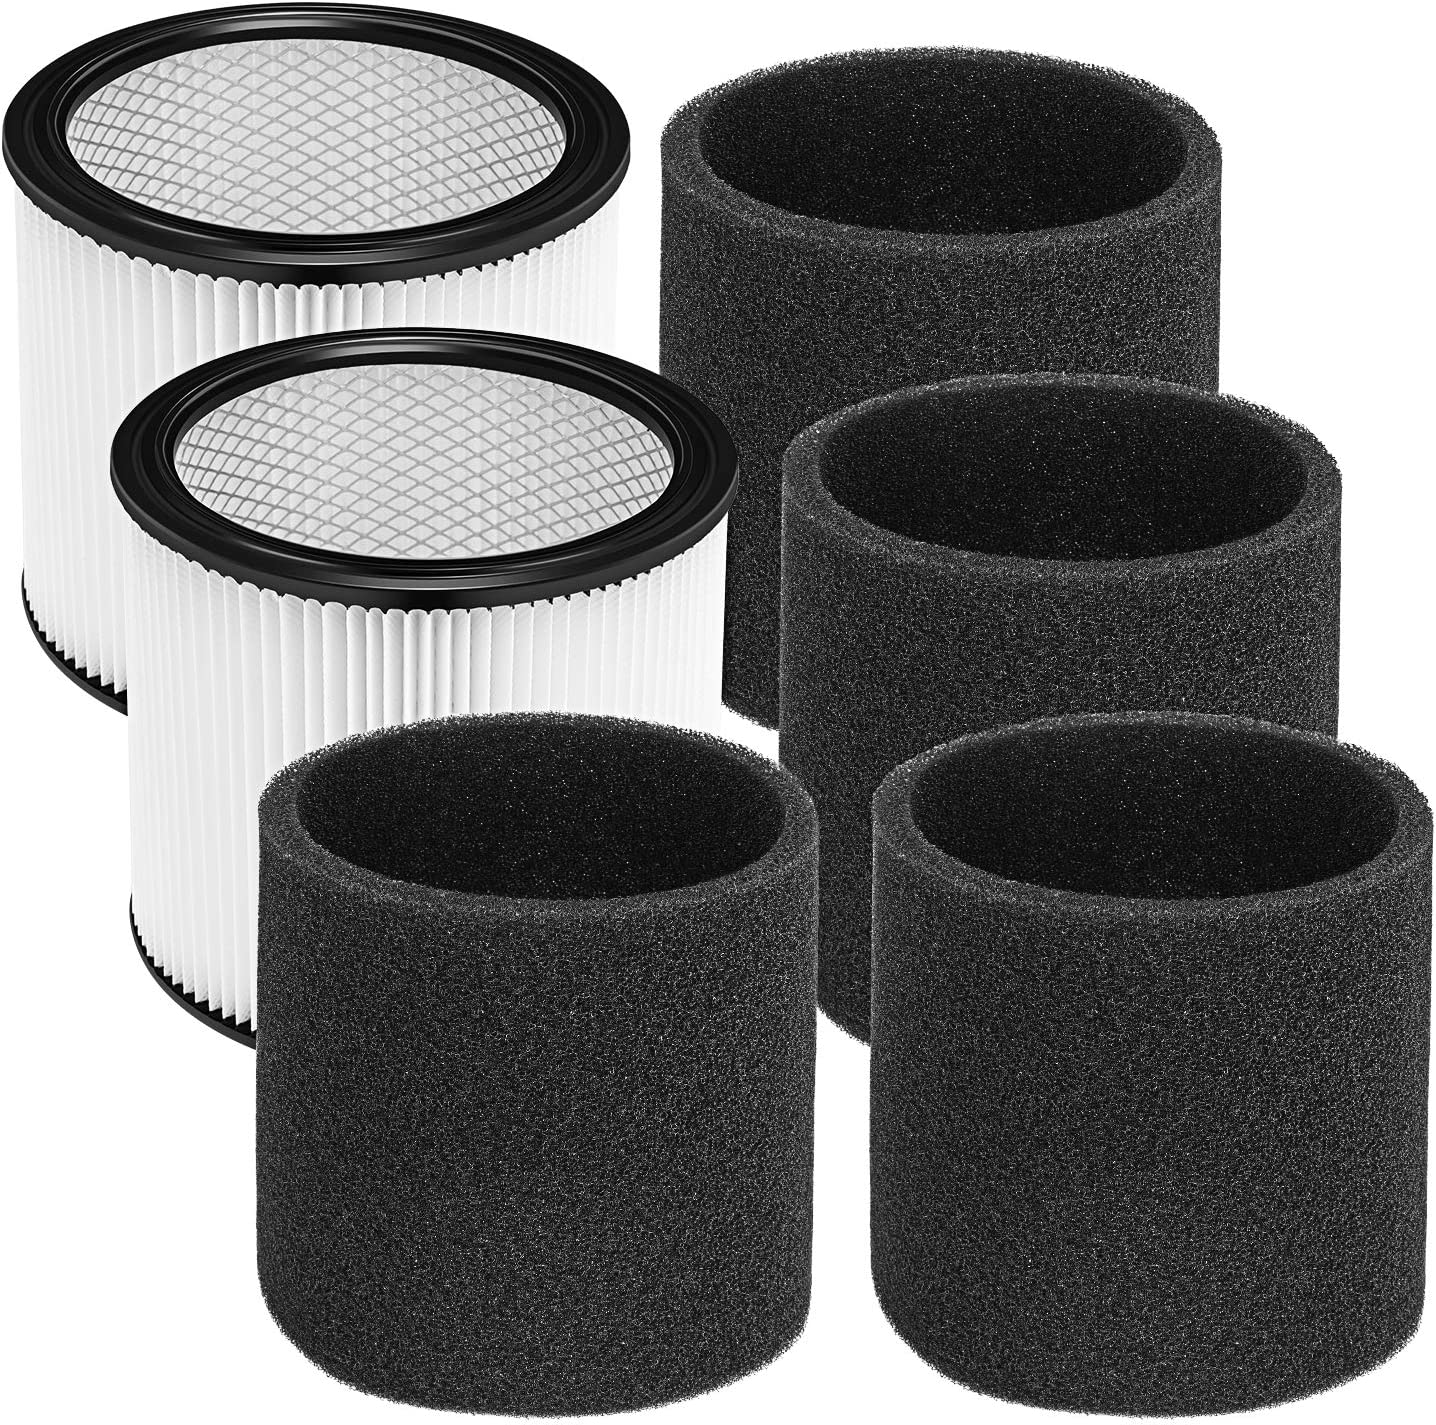 Cabiclean Foam Sleeve Filter for Shop-Vac 90304 90350 90333 Replacement for Most Wet/Dry Vacuum Cleaners 5 Gallon and Above, Compare to Part # 90304, 90585 (2+4)